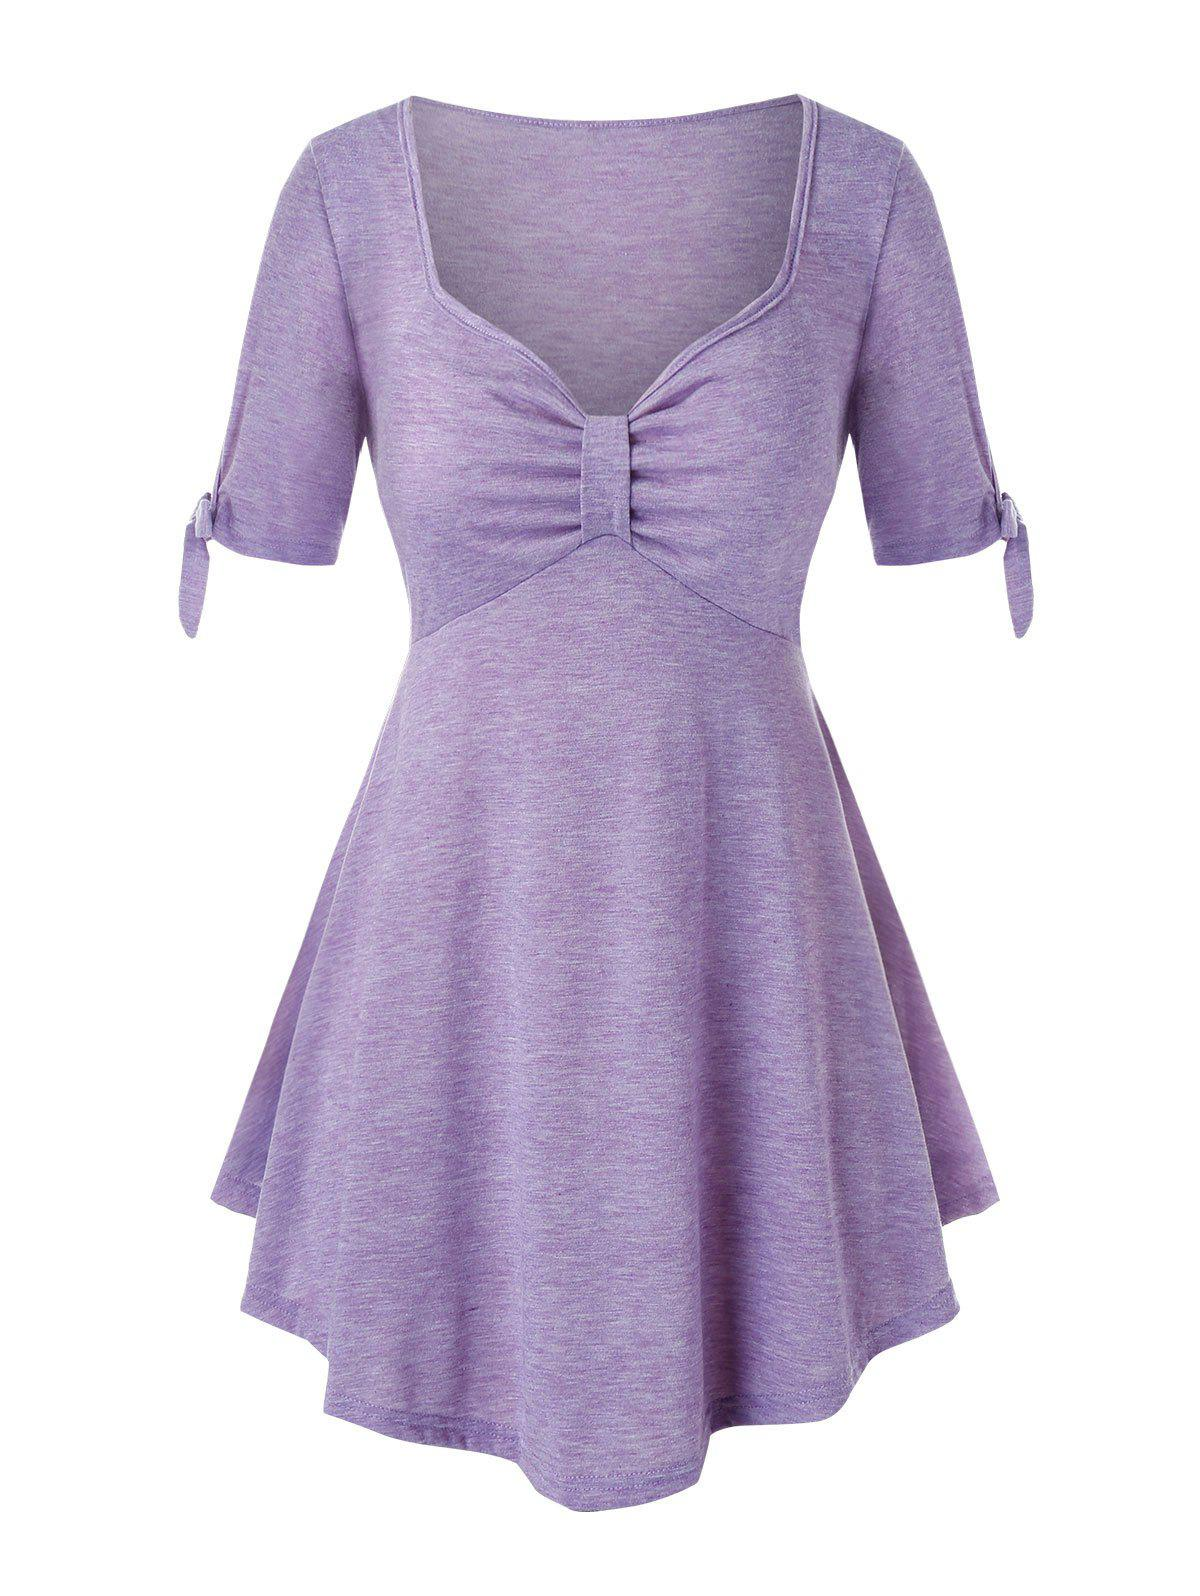 Plus Size Knotted Tie Cuffs Heather T-shirt - MAUVE 3X